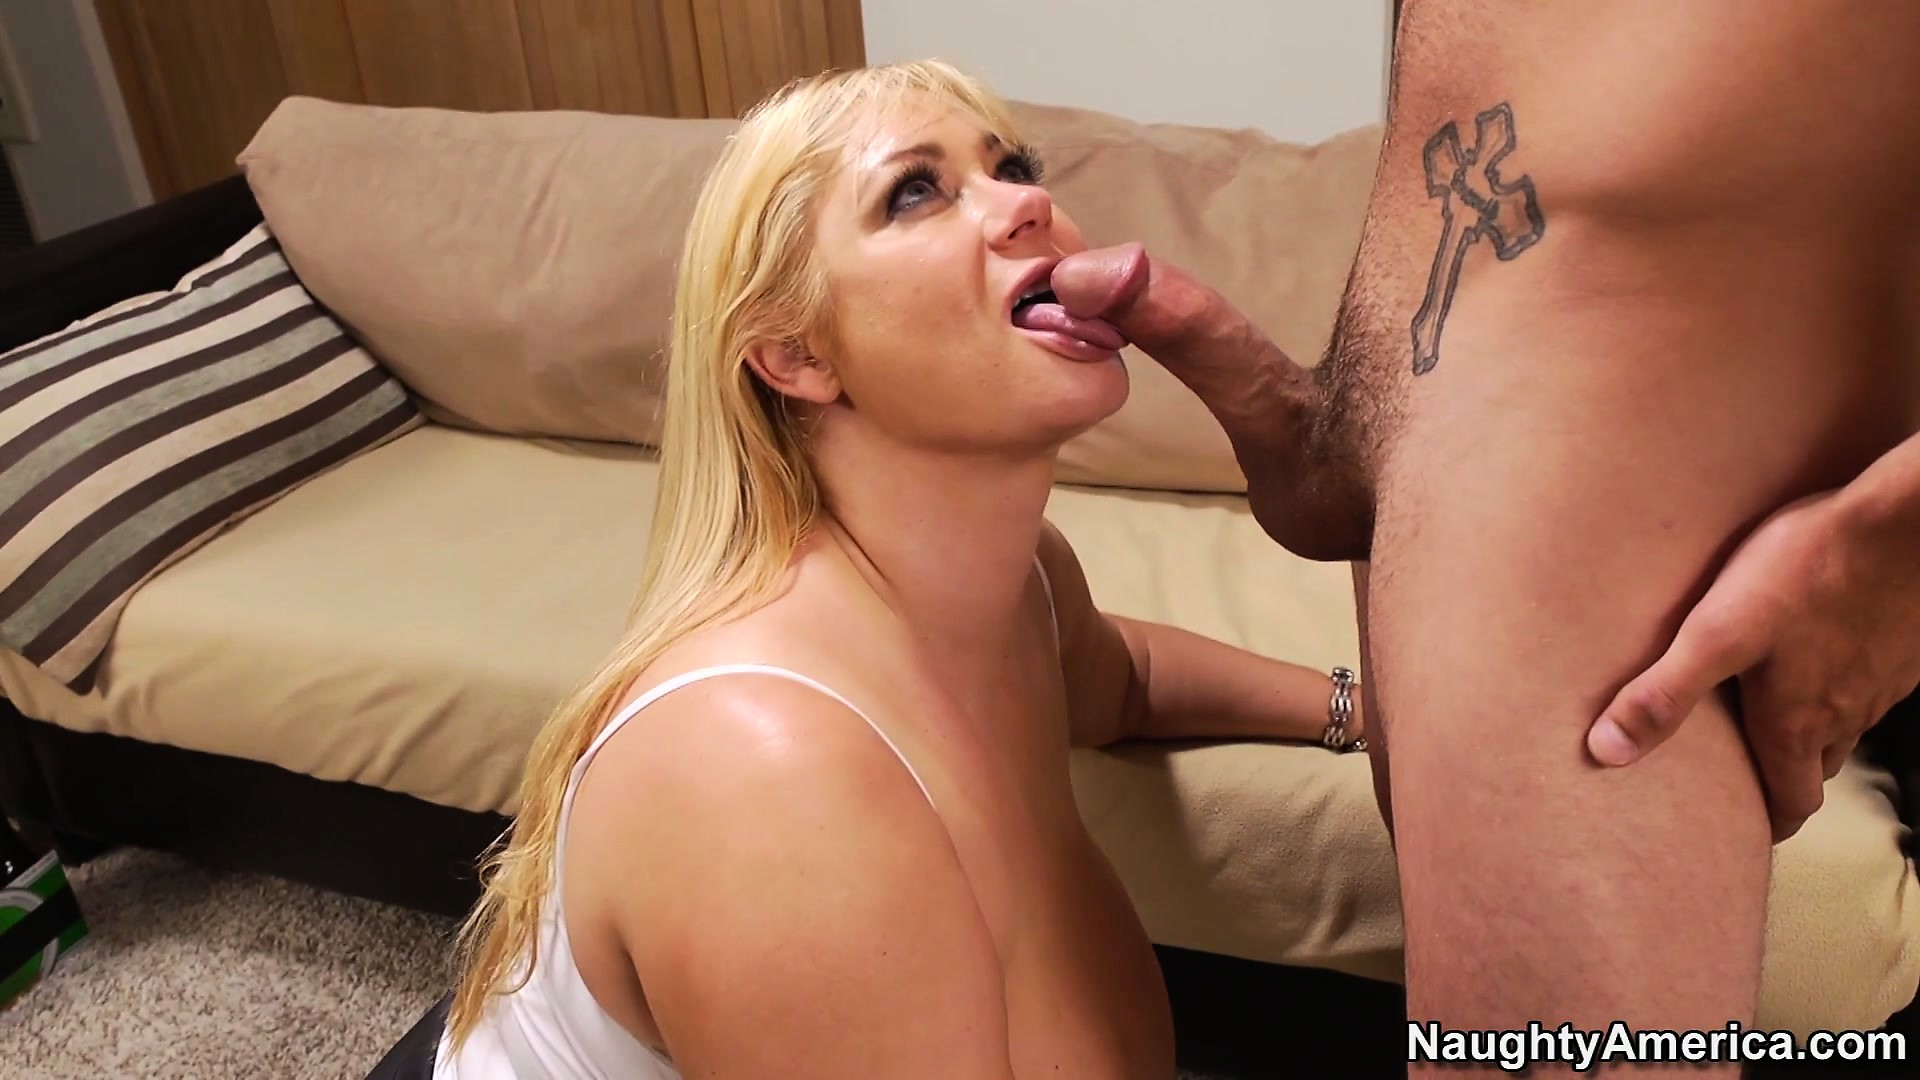 free mobile porn & sex videos & sex movies - samantha, a blonde